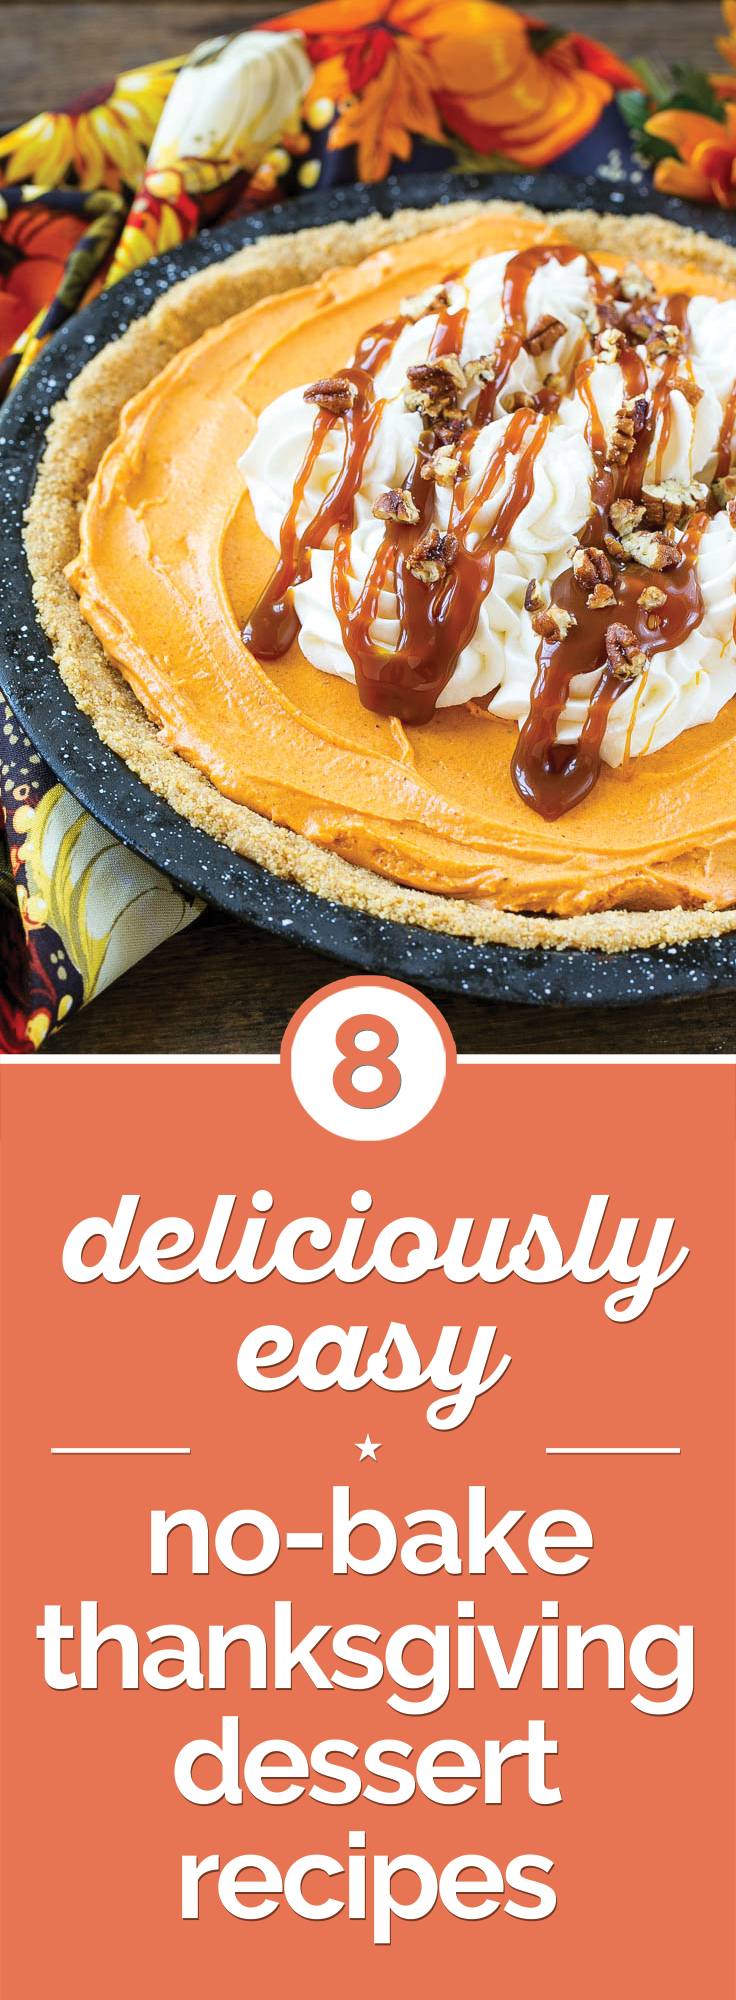 8 Deliciously Easy No-Bake Thanksgiving Dessert Recipes | thegoodstuff